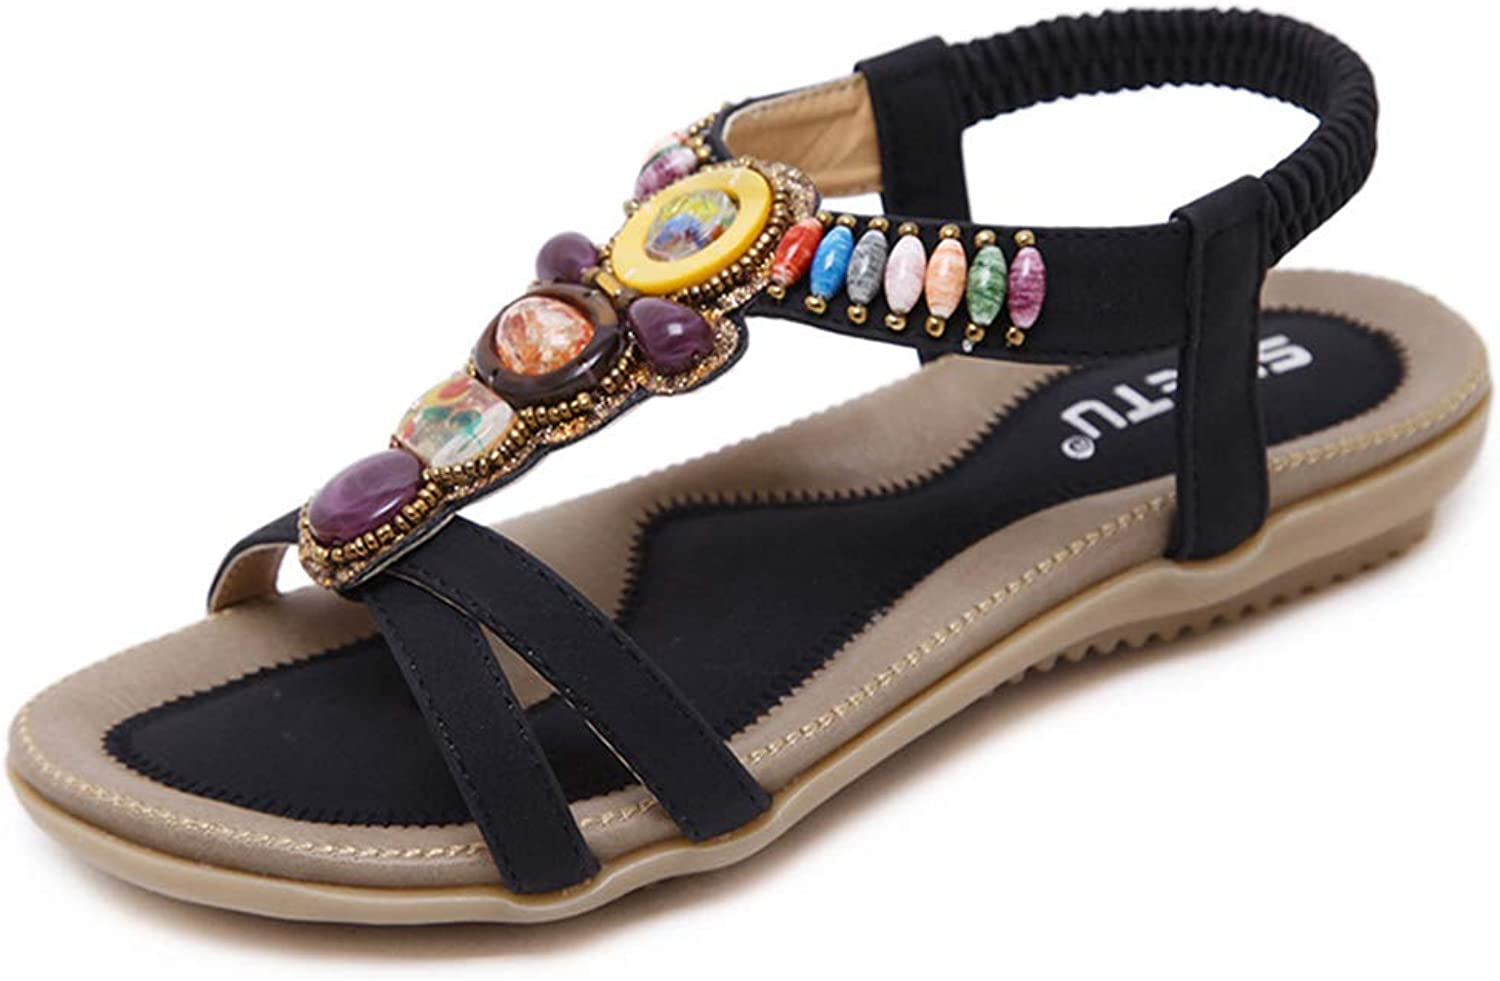 Women's Sandals, National Sandals Bohemian Beads Large Size Flat shoes Open Toe Non-Slip Breathable Lining Women's Sandals,Black,37